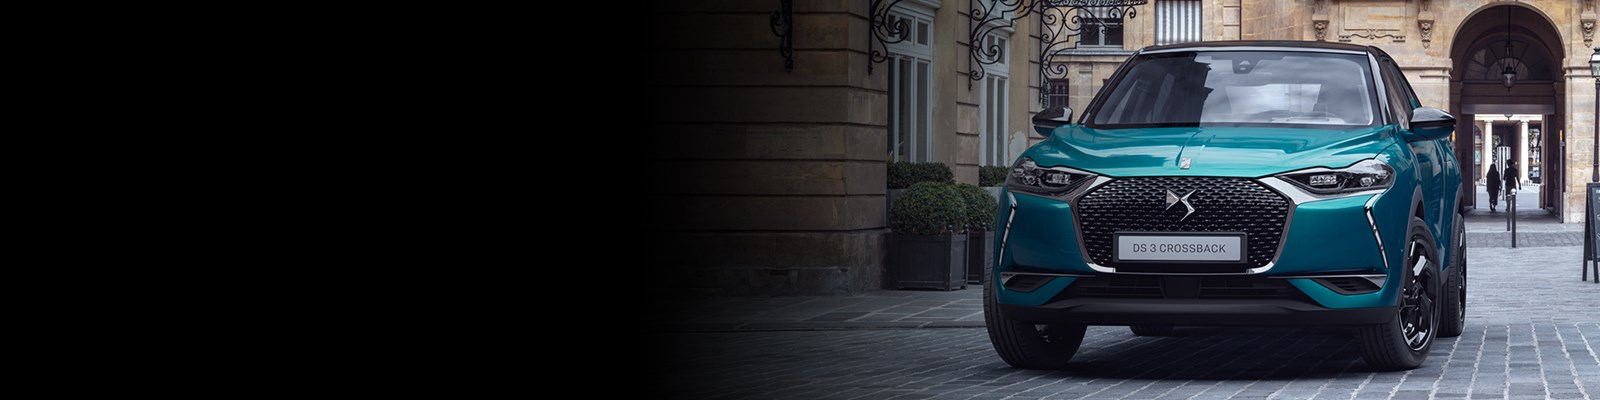 DS3 Crossback<br> From £249 per month